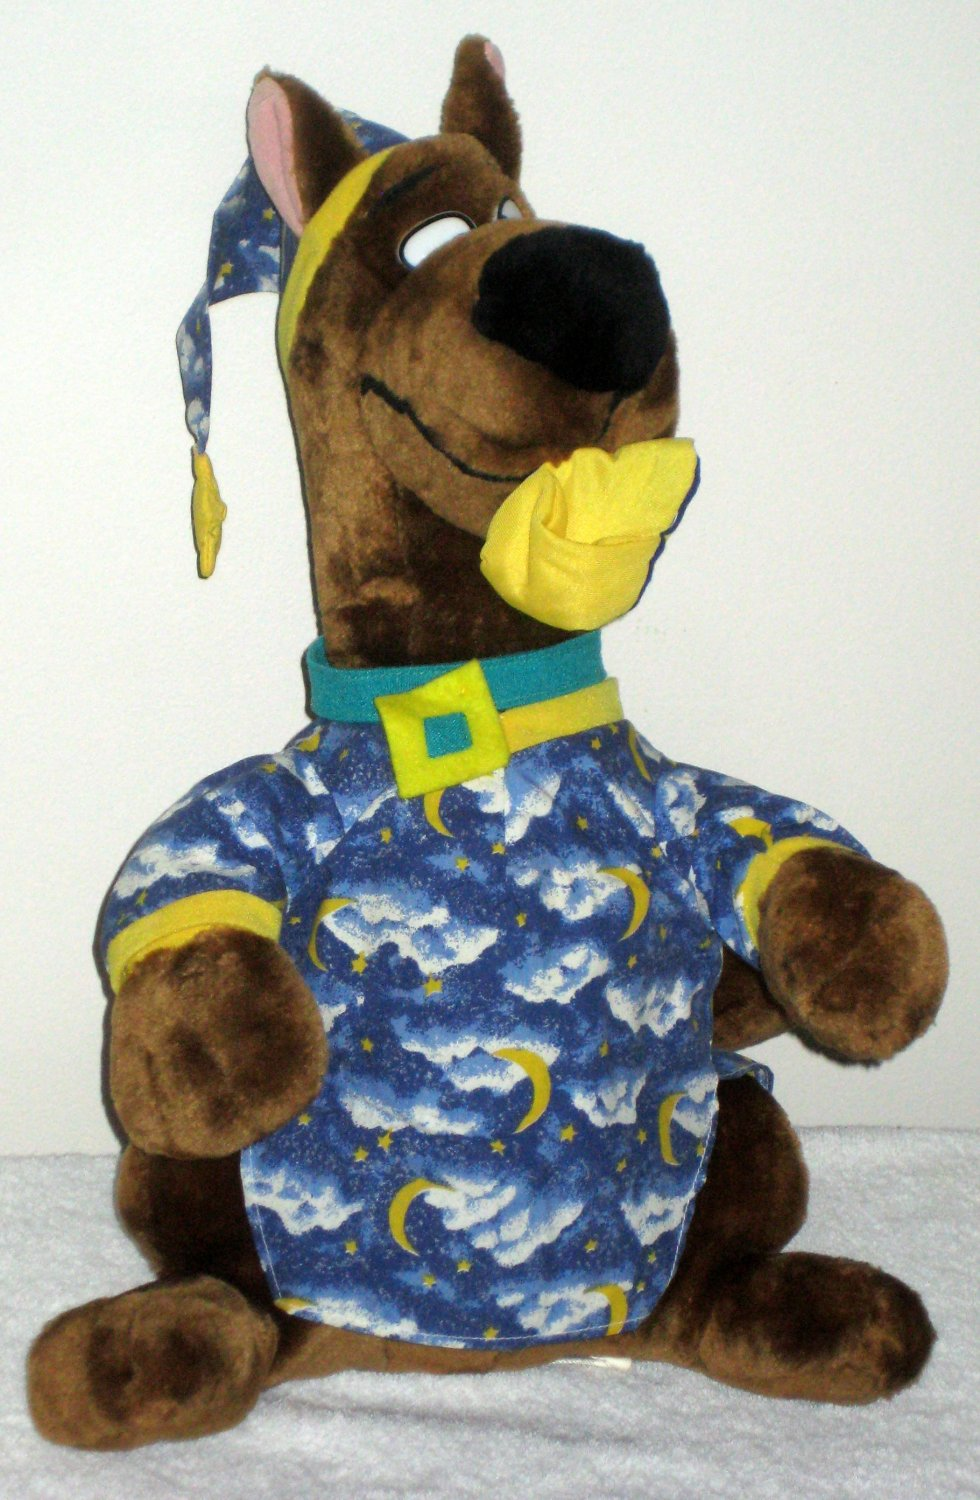 Toys For Bedtime : Sold out bedtime scooby doo plush stuffed animal inch